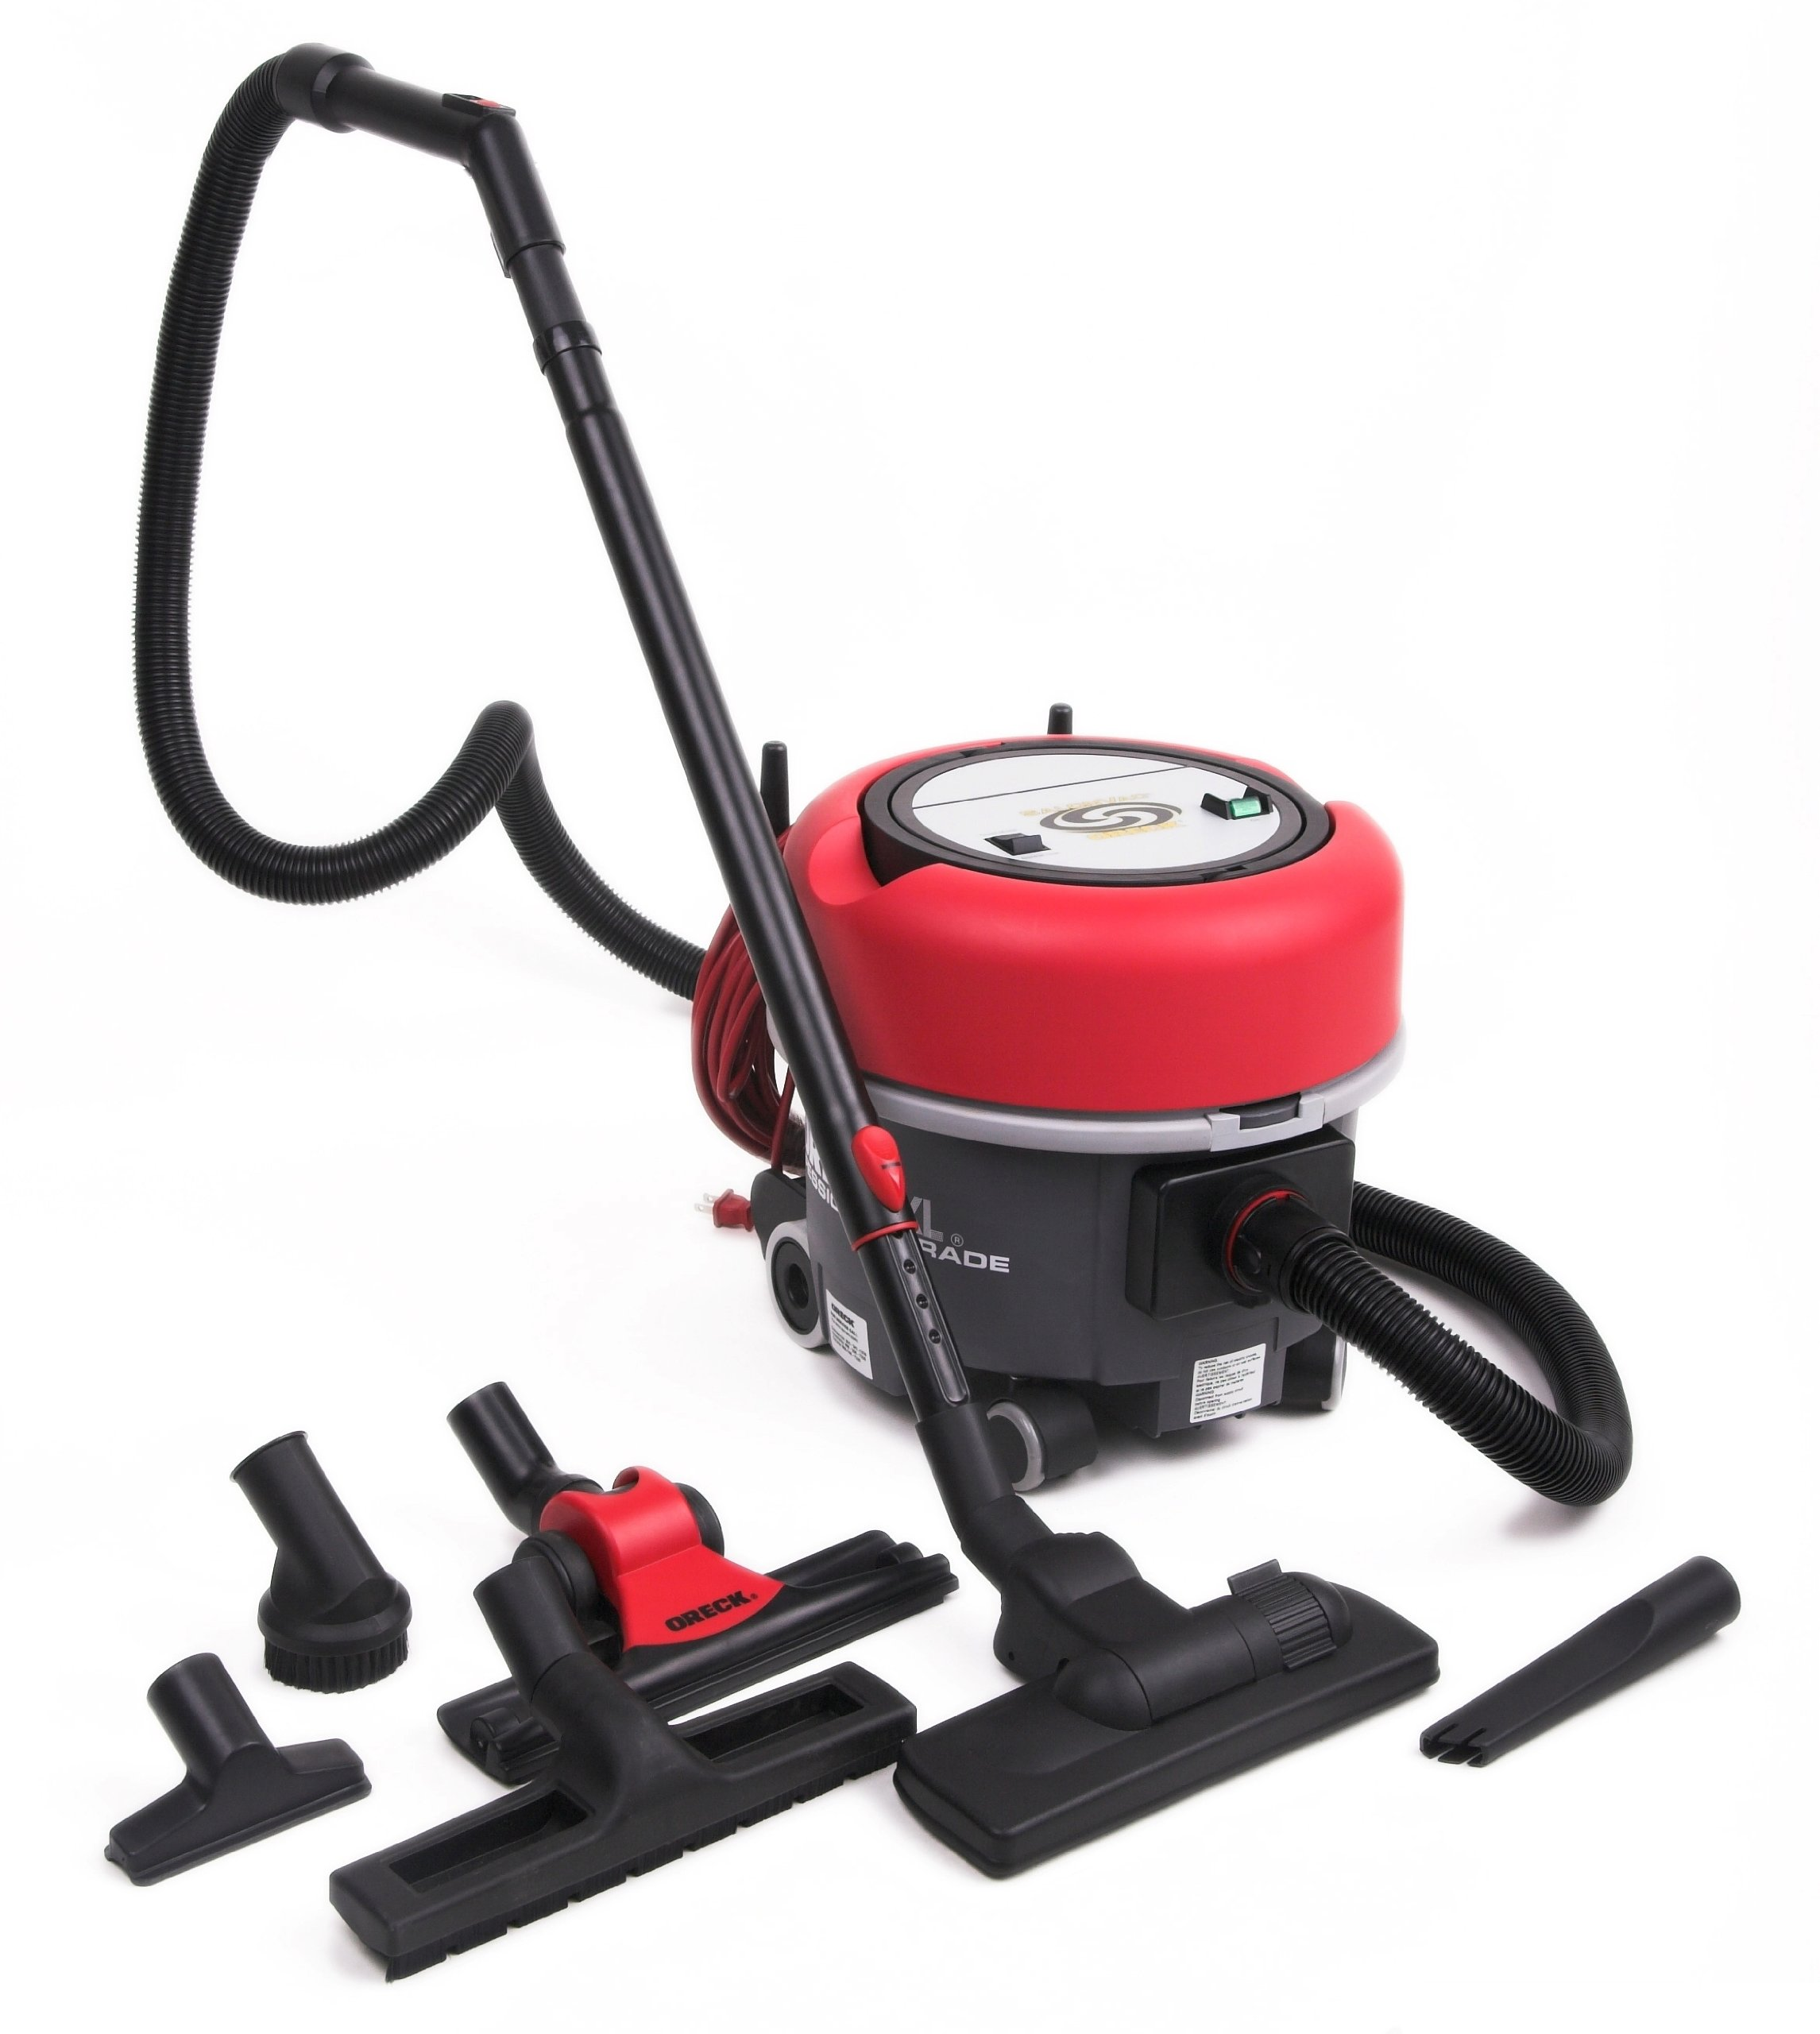 Oreck Commercial COMP6 Compacto 6 Canister Vacuum, 1.4 HP